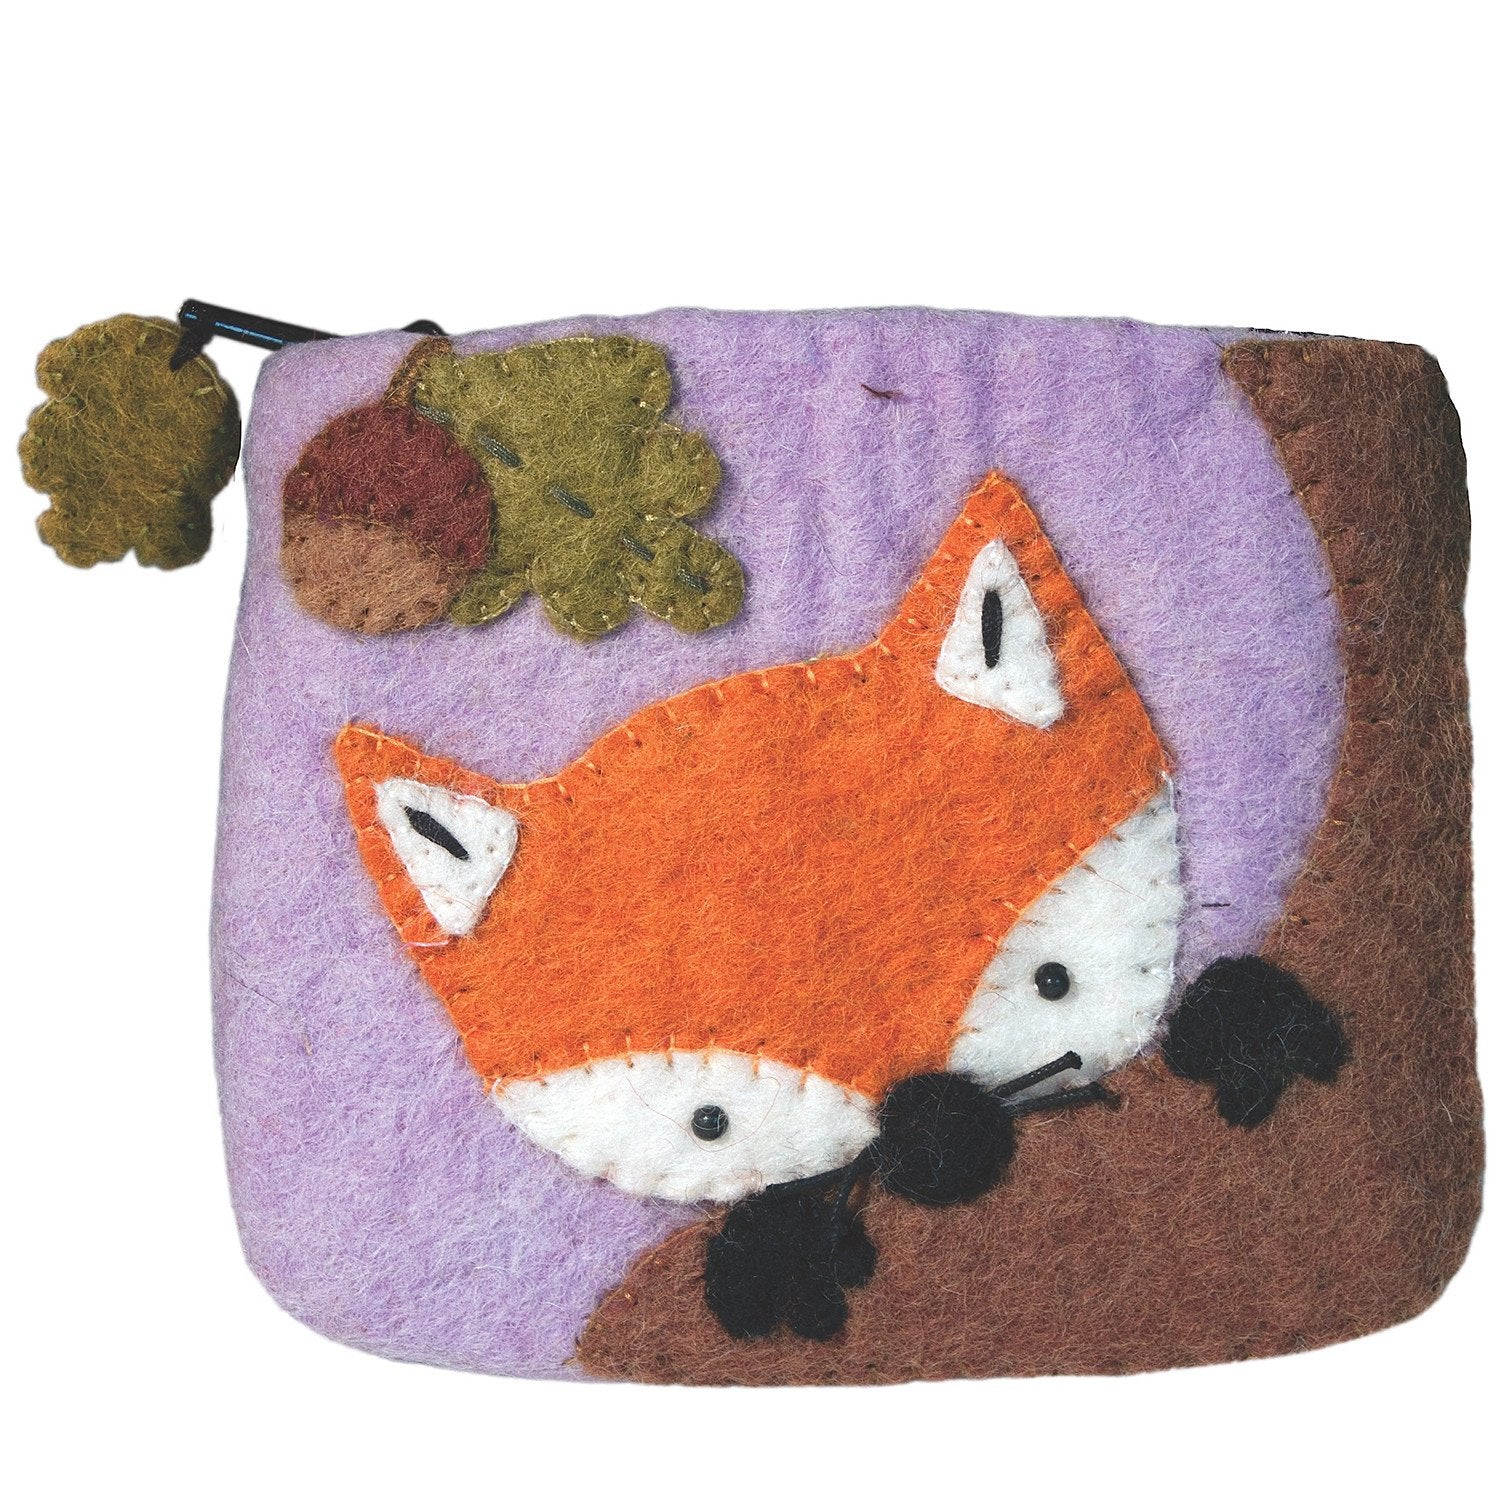 Felt Coin Purse - Baby Fox